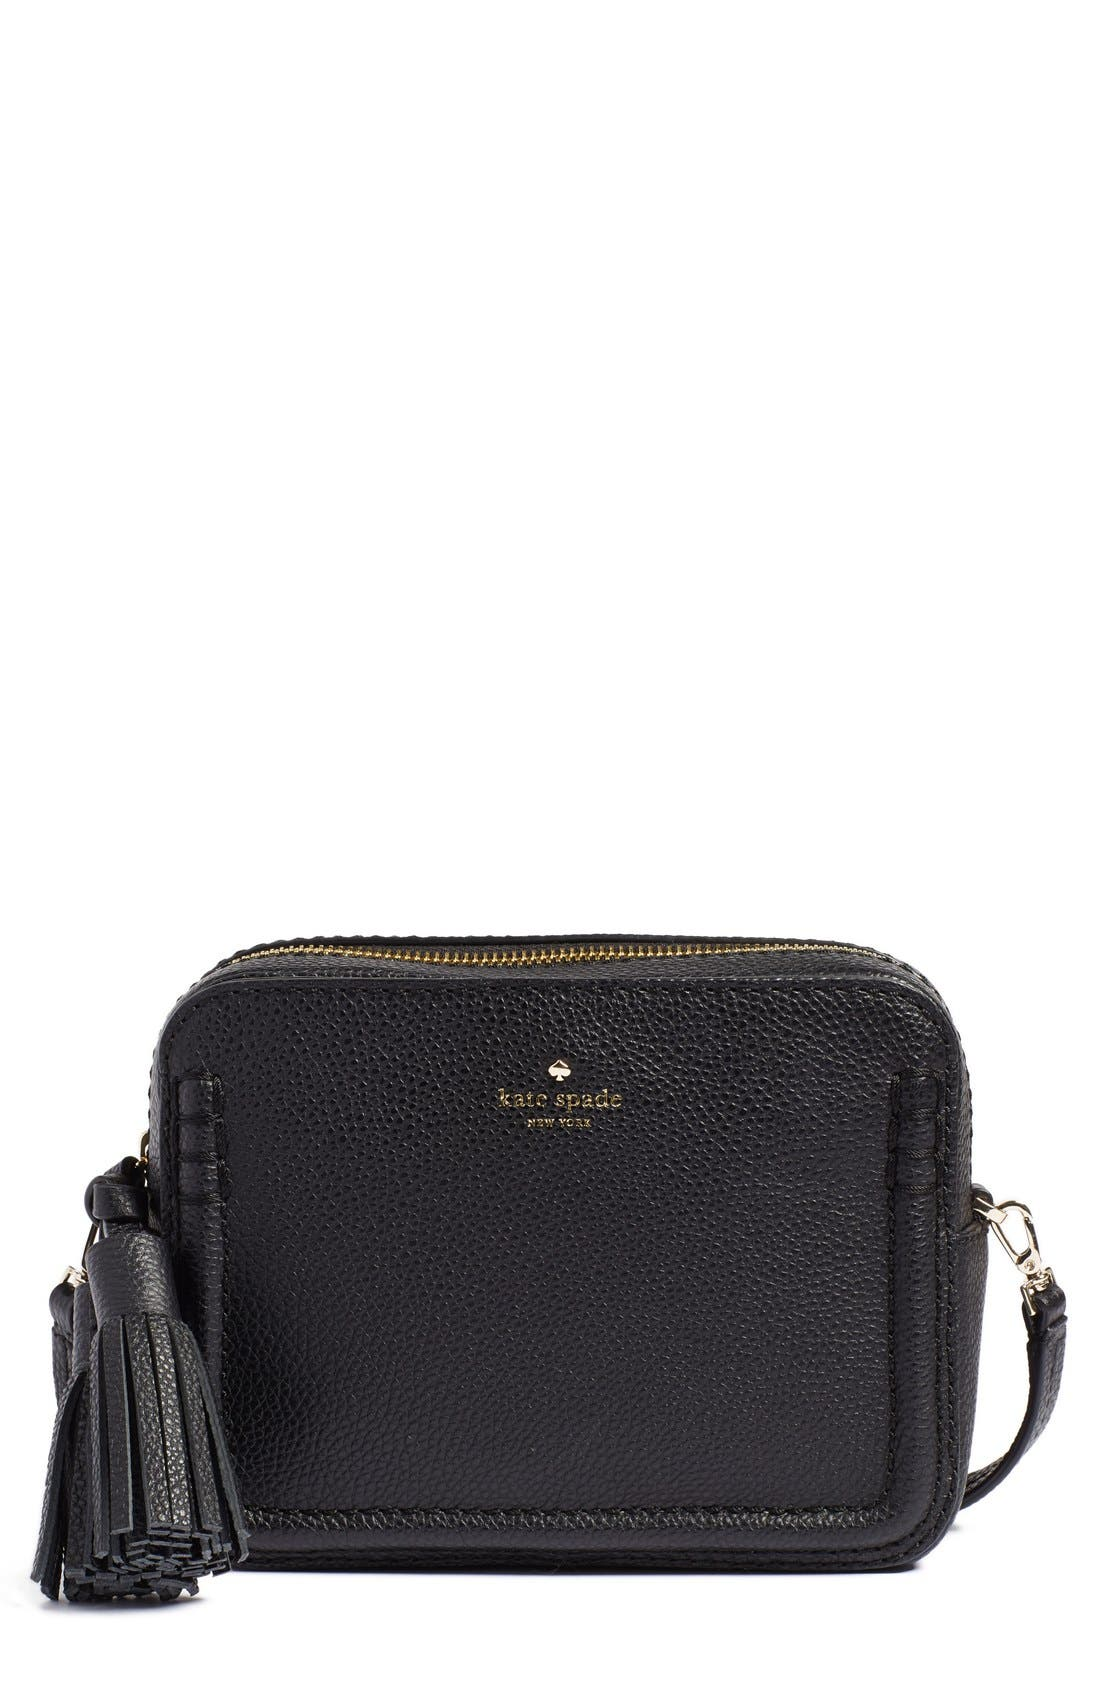 Alternate Image 1 Selected - kate spade new york 'orchard street - arla' crossbody bag